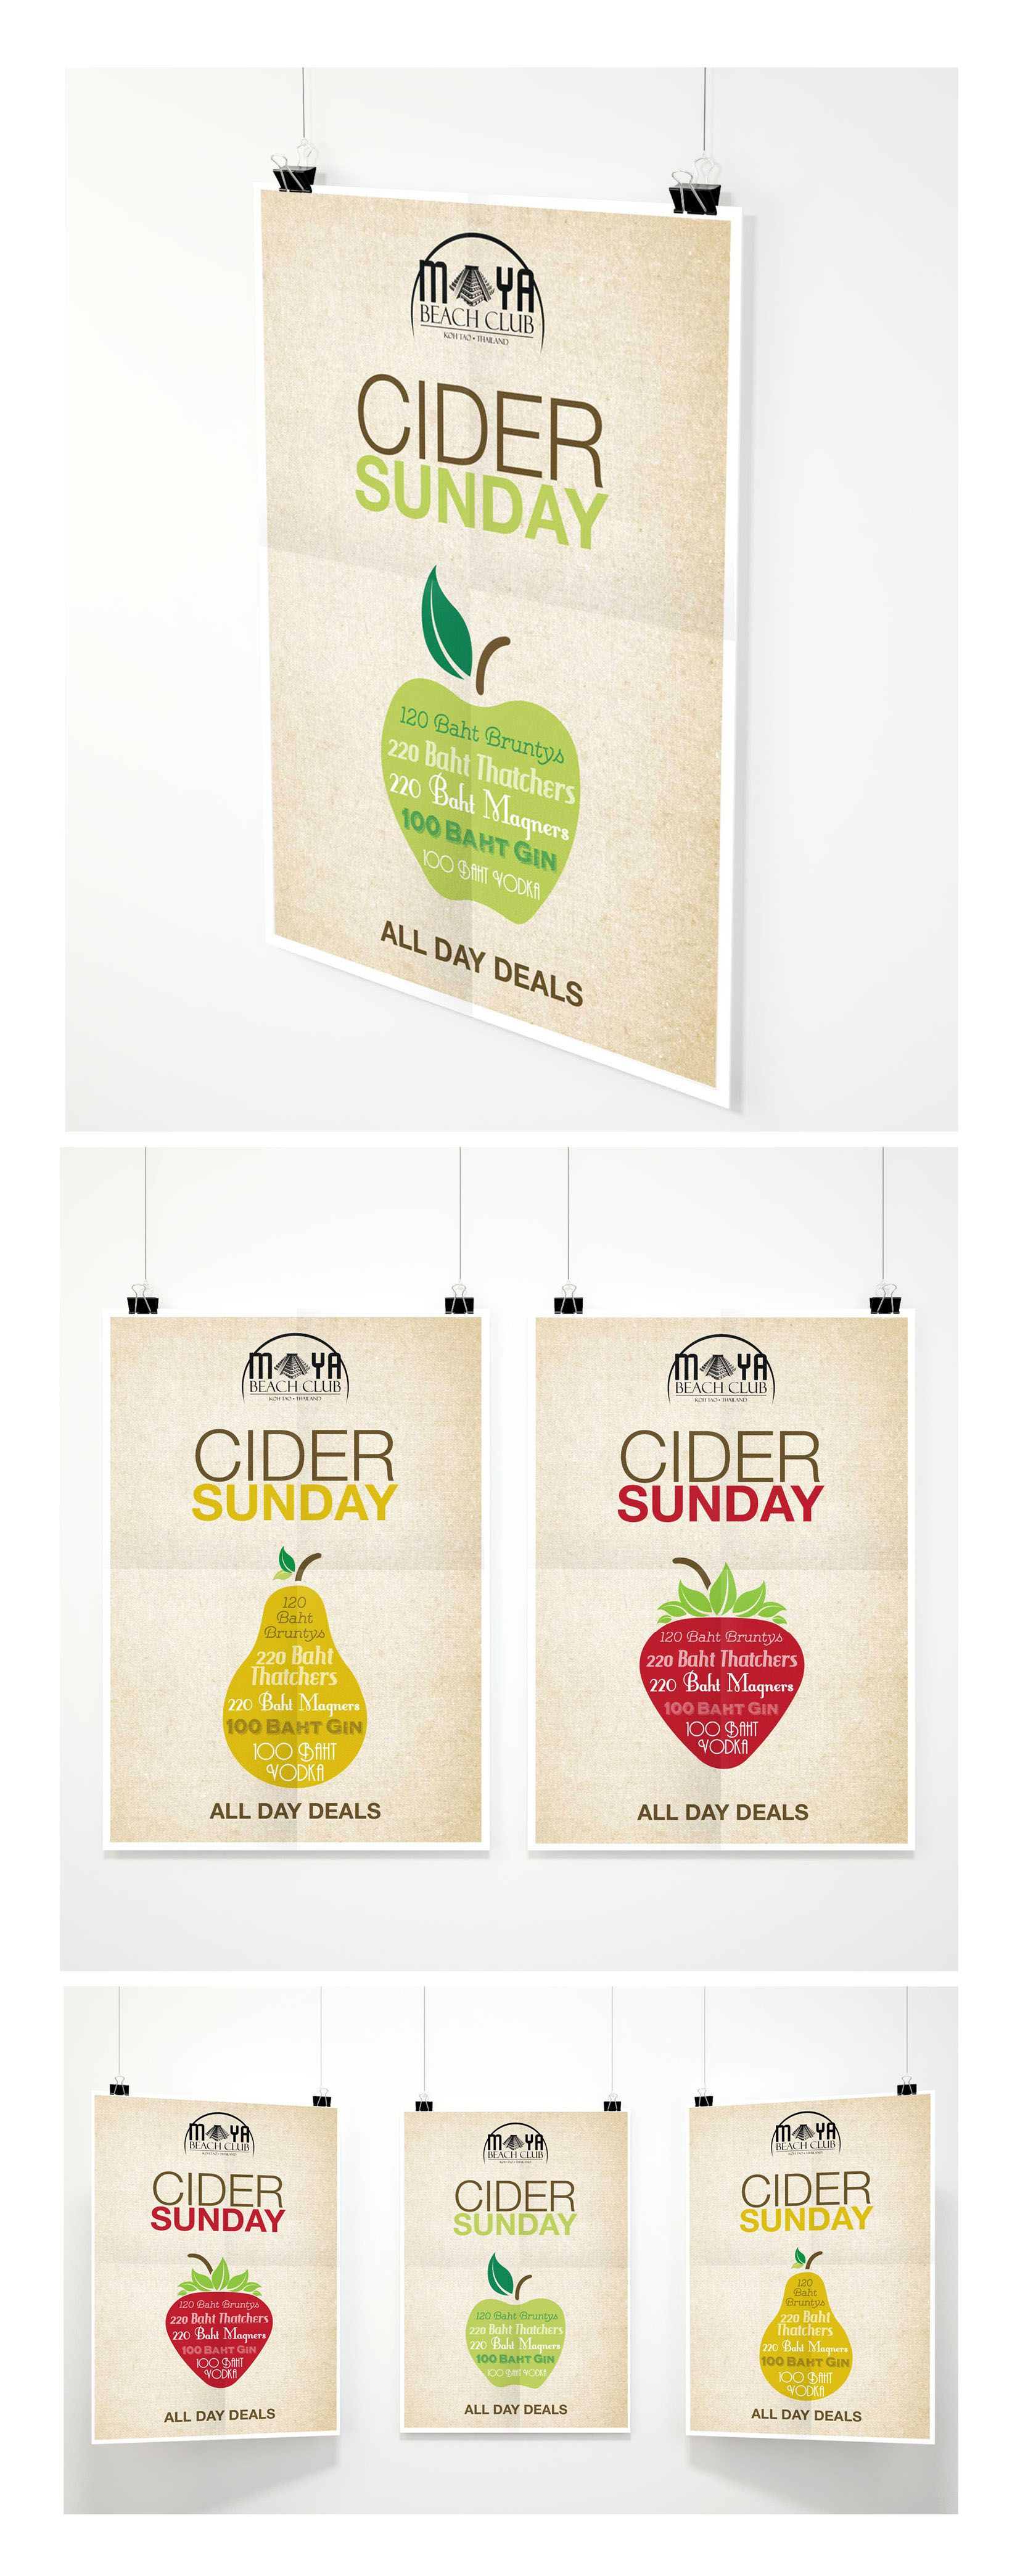 Cider Sunday set of posters were created for a beach bar in south east Asia to promote their Sunday afternoon drinking